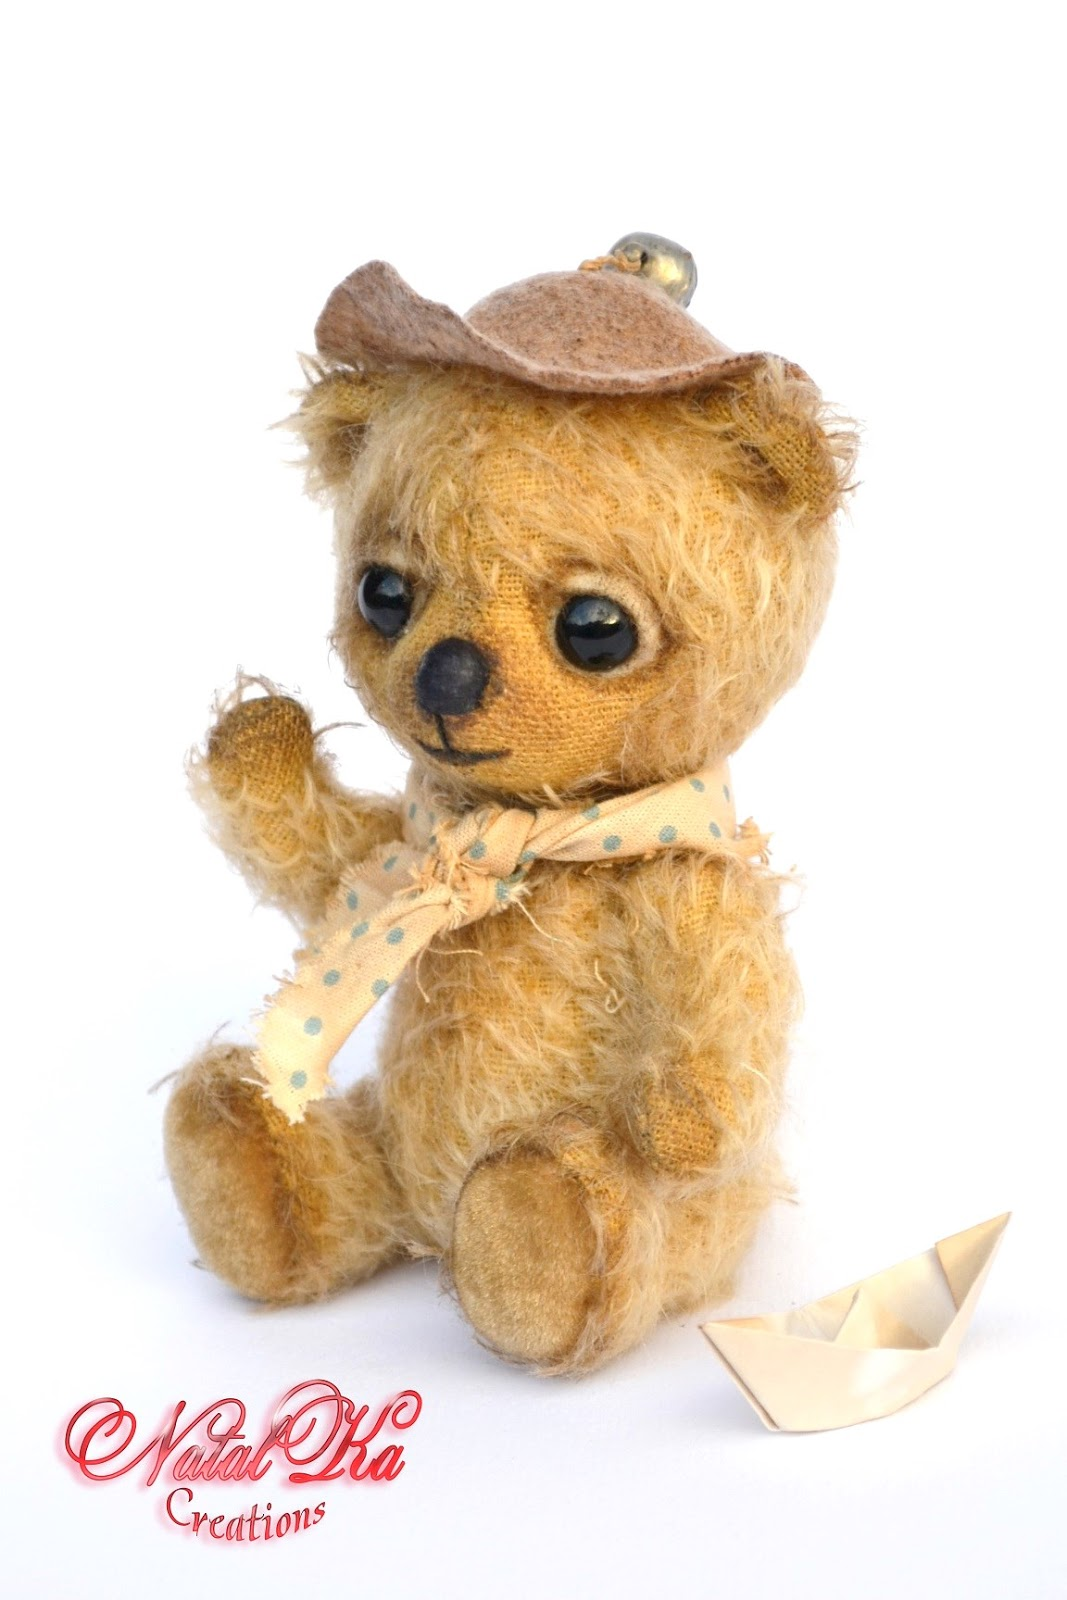 Teddy bear, teddies, artist teddy bear, artist bear ooak, handmade by NatalKa Creations. Teddies with charm